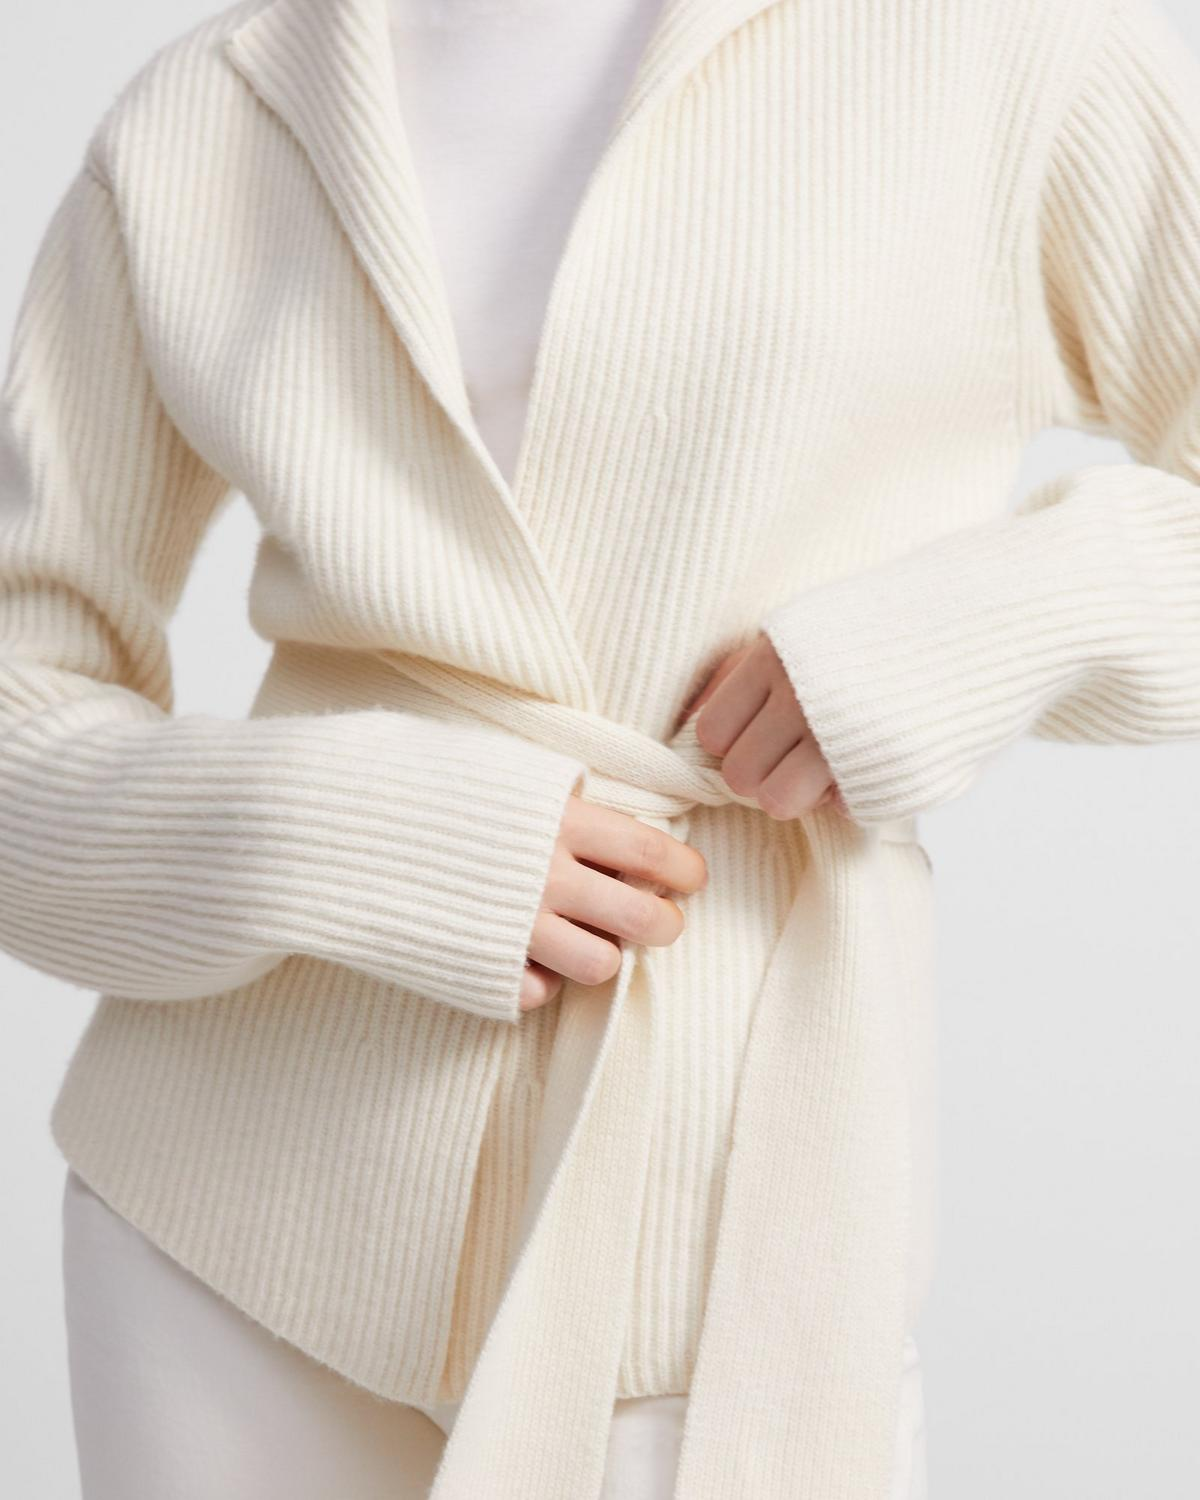 Felted Wool-Cashmere Jacket with Belt 0 - click to view larger image